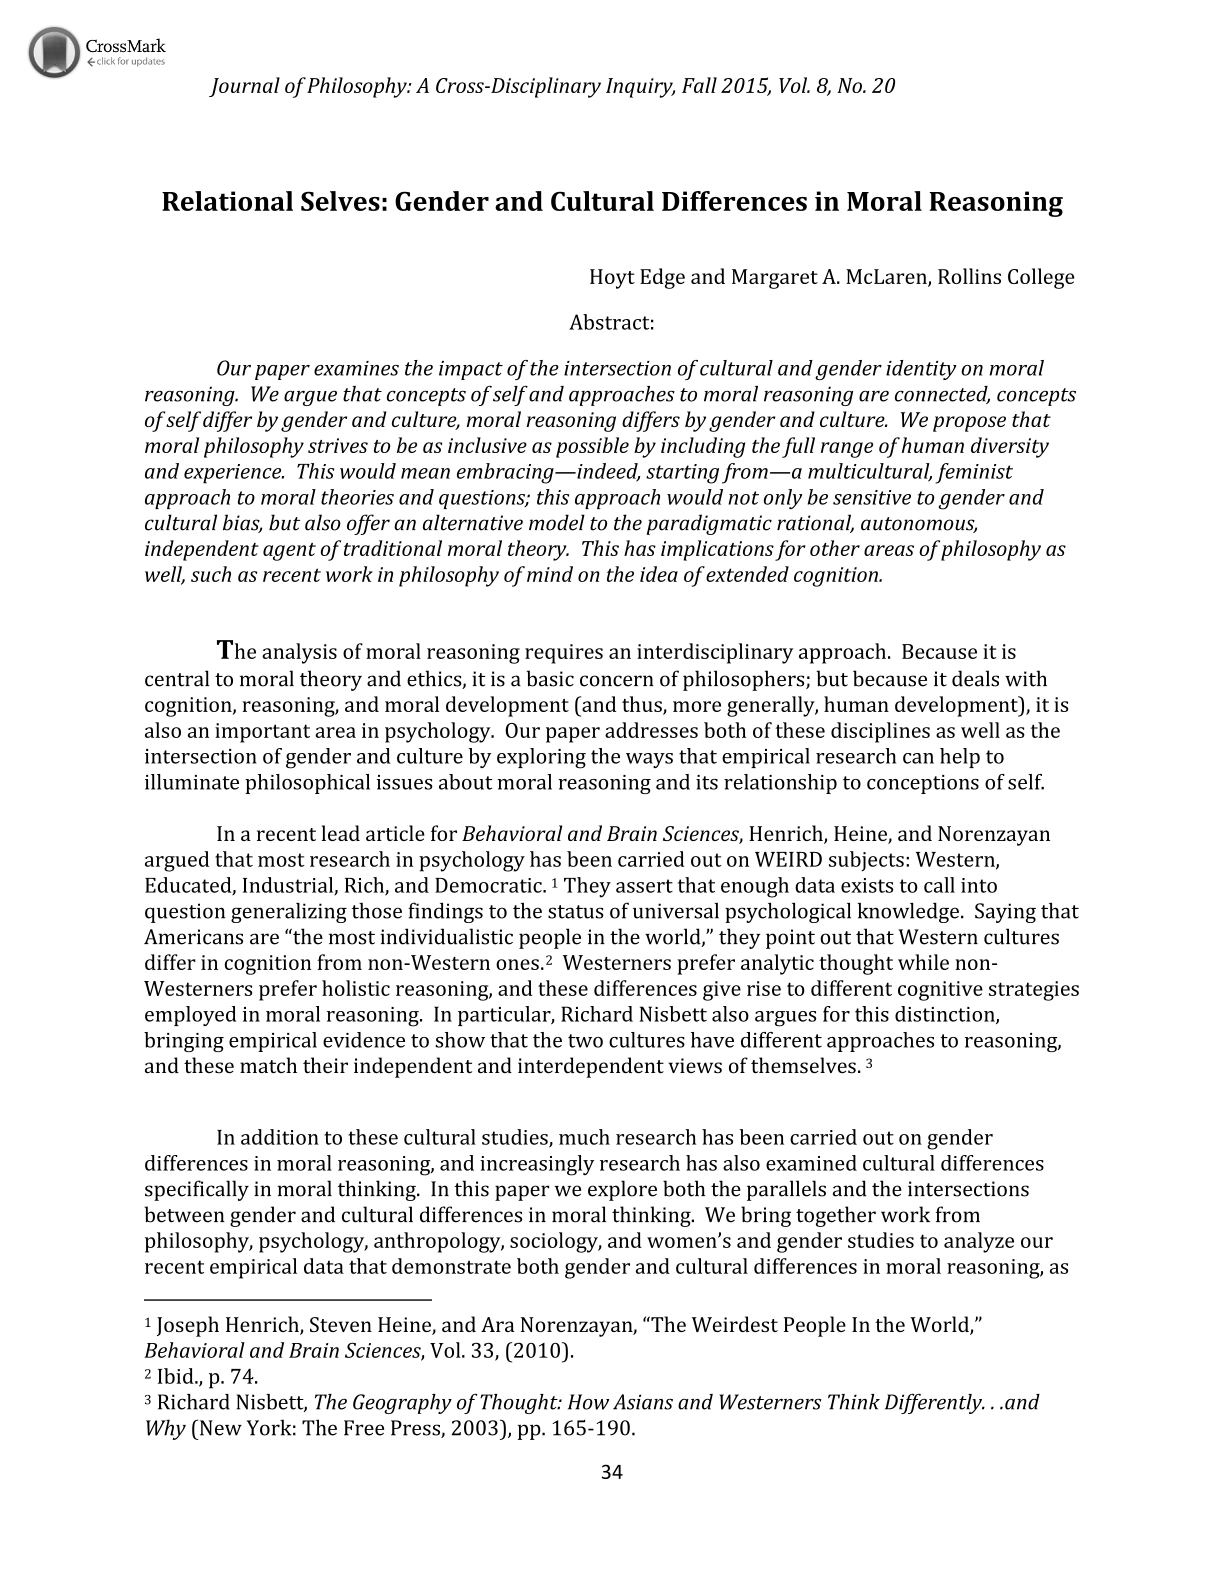 relational selves gender and cultural differences in moral  document is being loaded